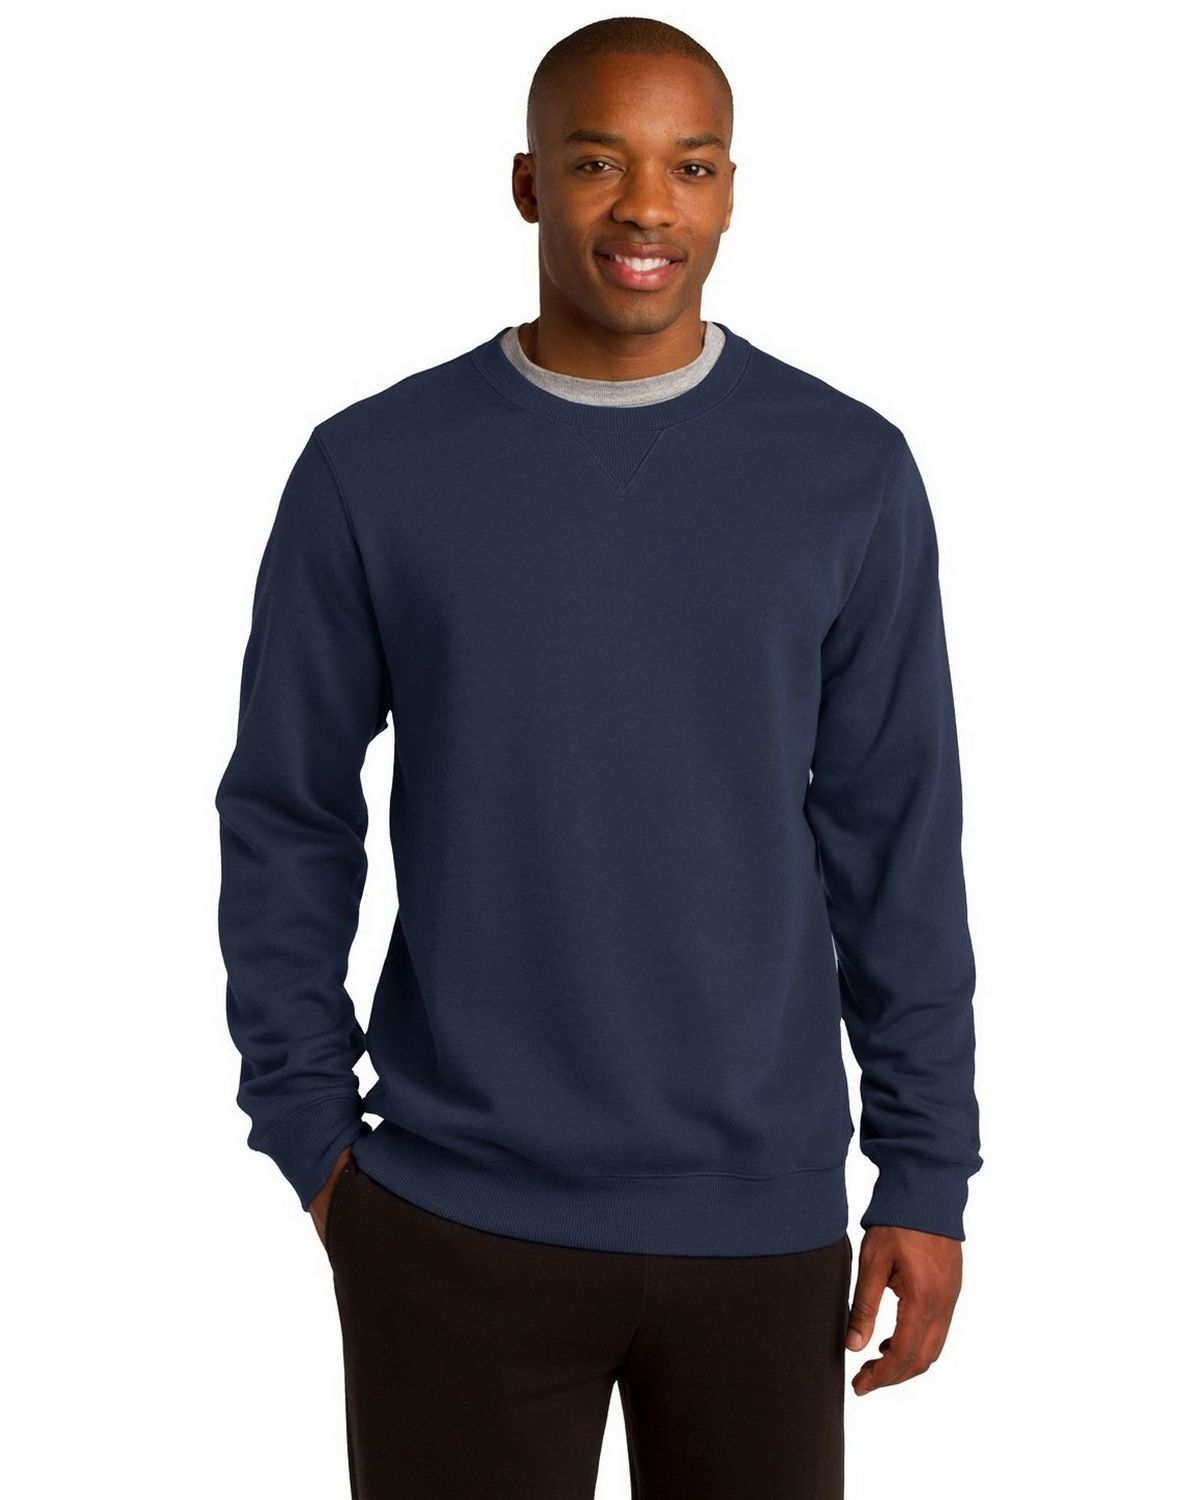 Sport-Tek ST266 Crewneck Sweatshirt - Graphite Heather - XS ST266